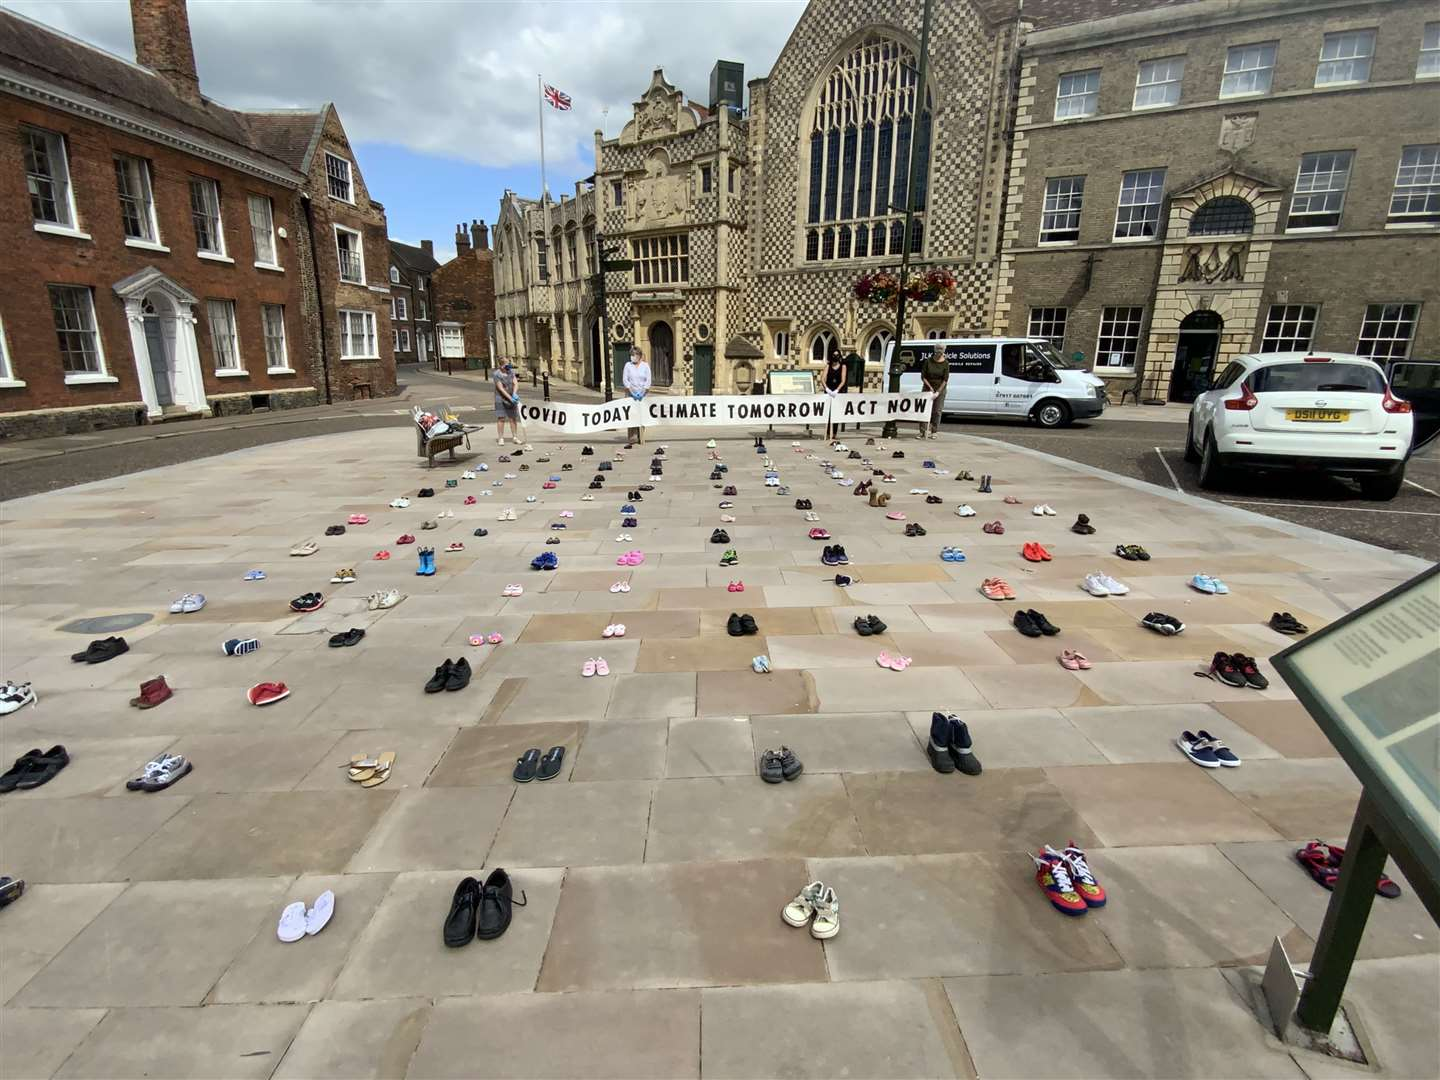 Extinction Rebellion staged a protest outside Lynn Town Hall by placing pairs of children's shoes on the ground as a symbol of the future generations who will be affected by climate change. Picture: SUBMITTED